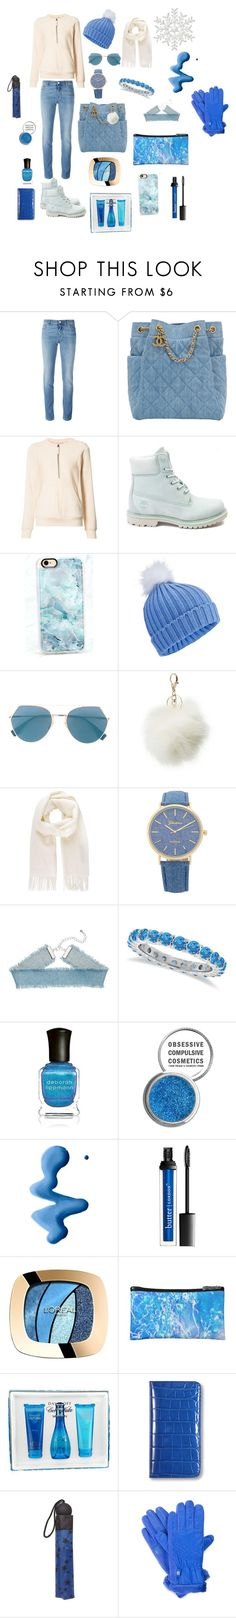 """My lovely blue"" by sahar1219 ❤ liked on Polyvore featuring Givenchy, Chanel, Helmut Lang, Timberland, Casetify, Miss Selfridge, Fendi, Charlotte Russe, Vivienne Westwood and Allurez"